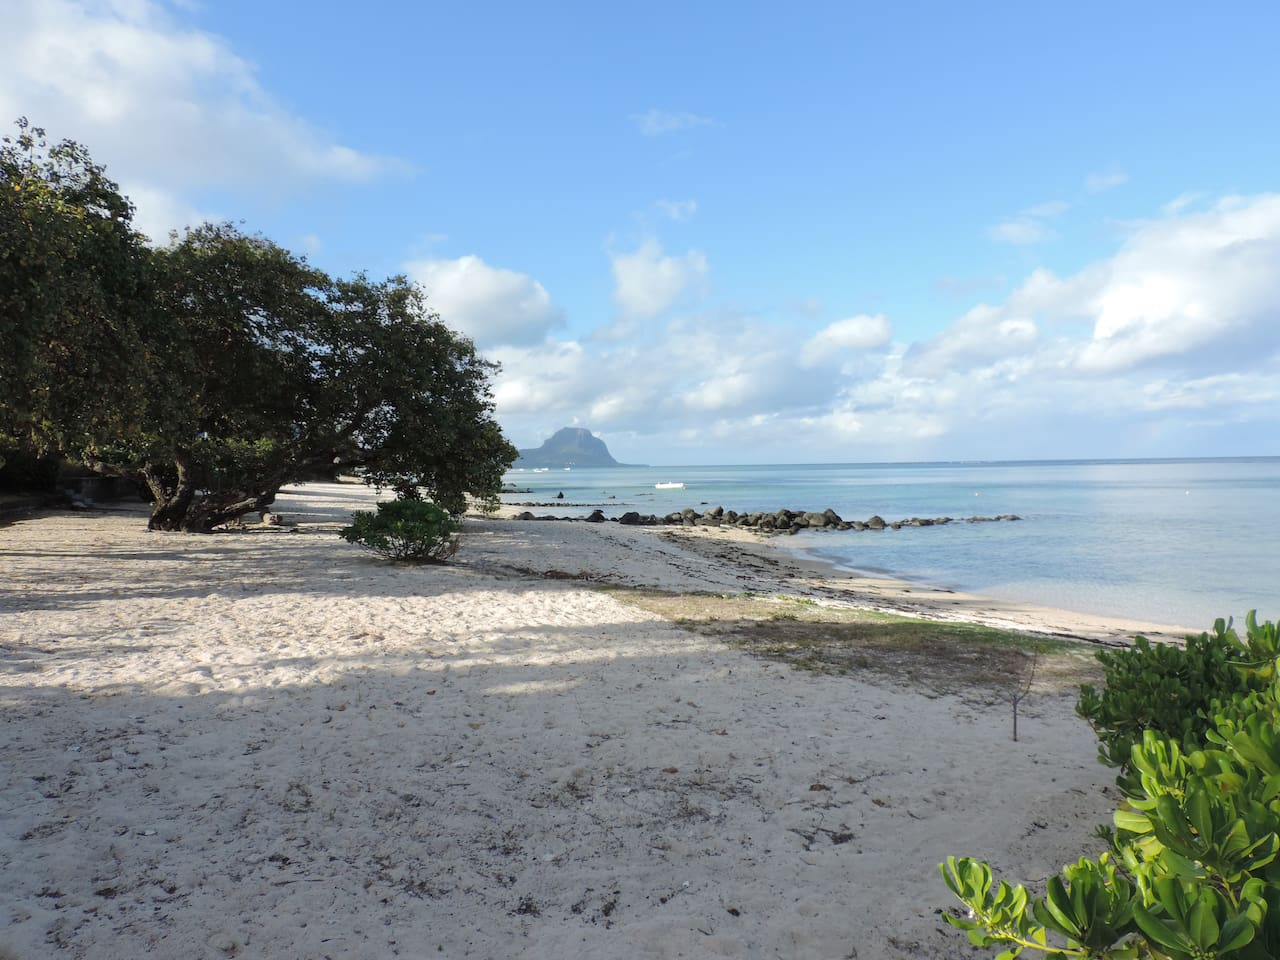 One of the best beaches of Tamarin is right in front of the apartment at 30 meters - private and peaceful.